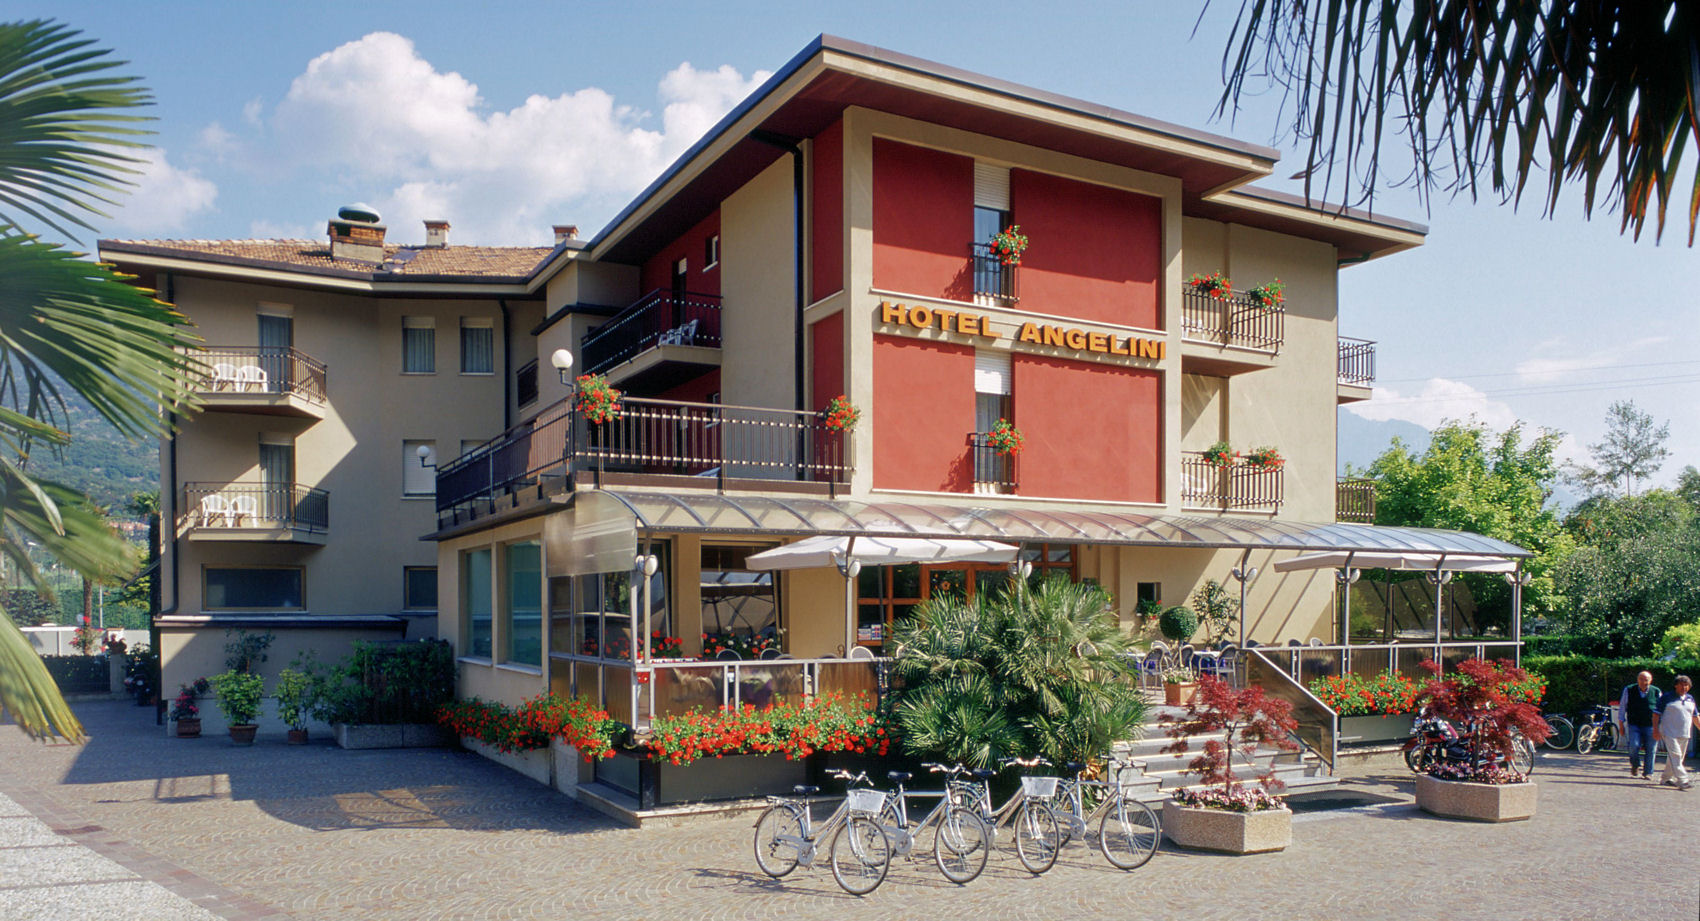 Hotel Caminetto Garda Hotel Angelini Rooms Torbole Sul Garda South Tyrol